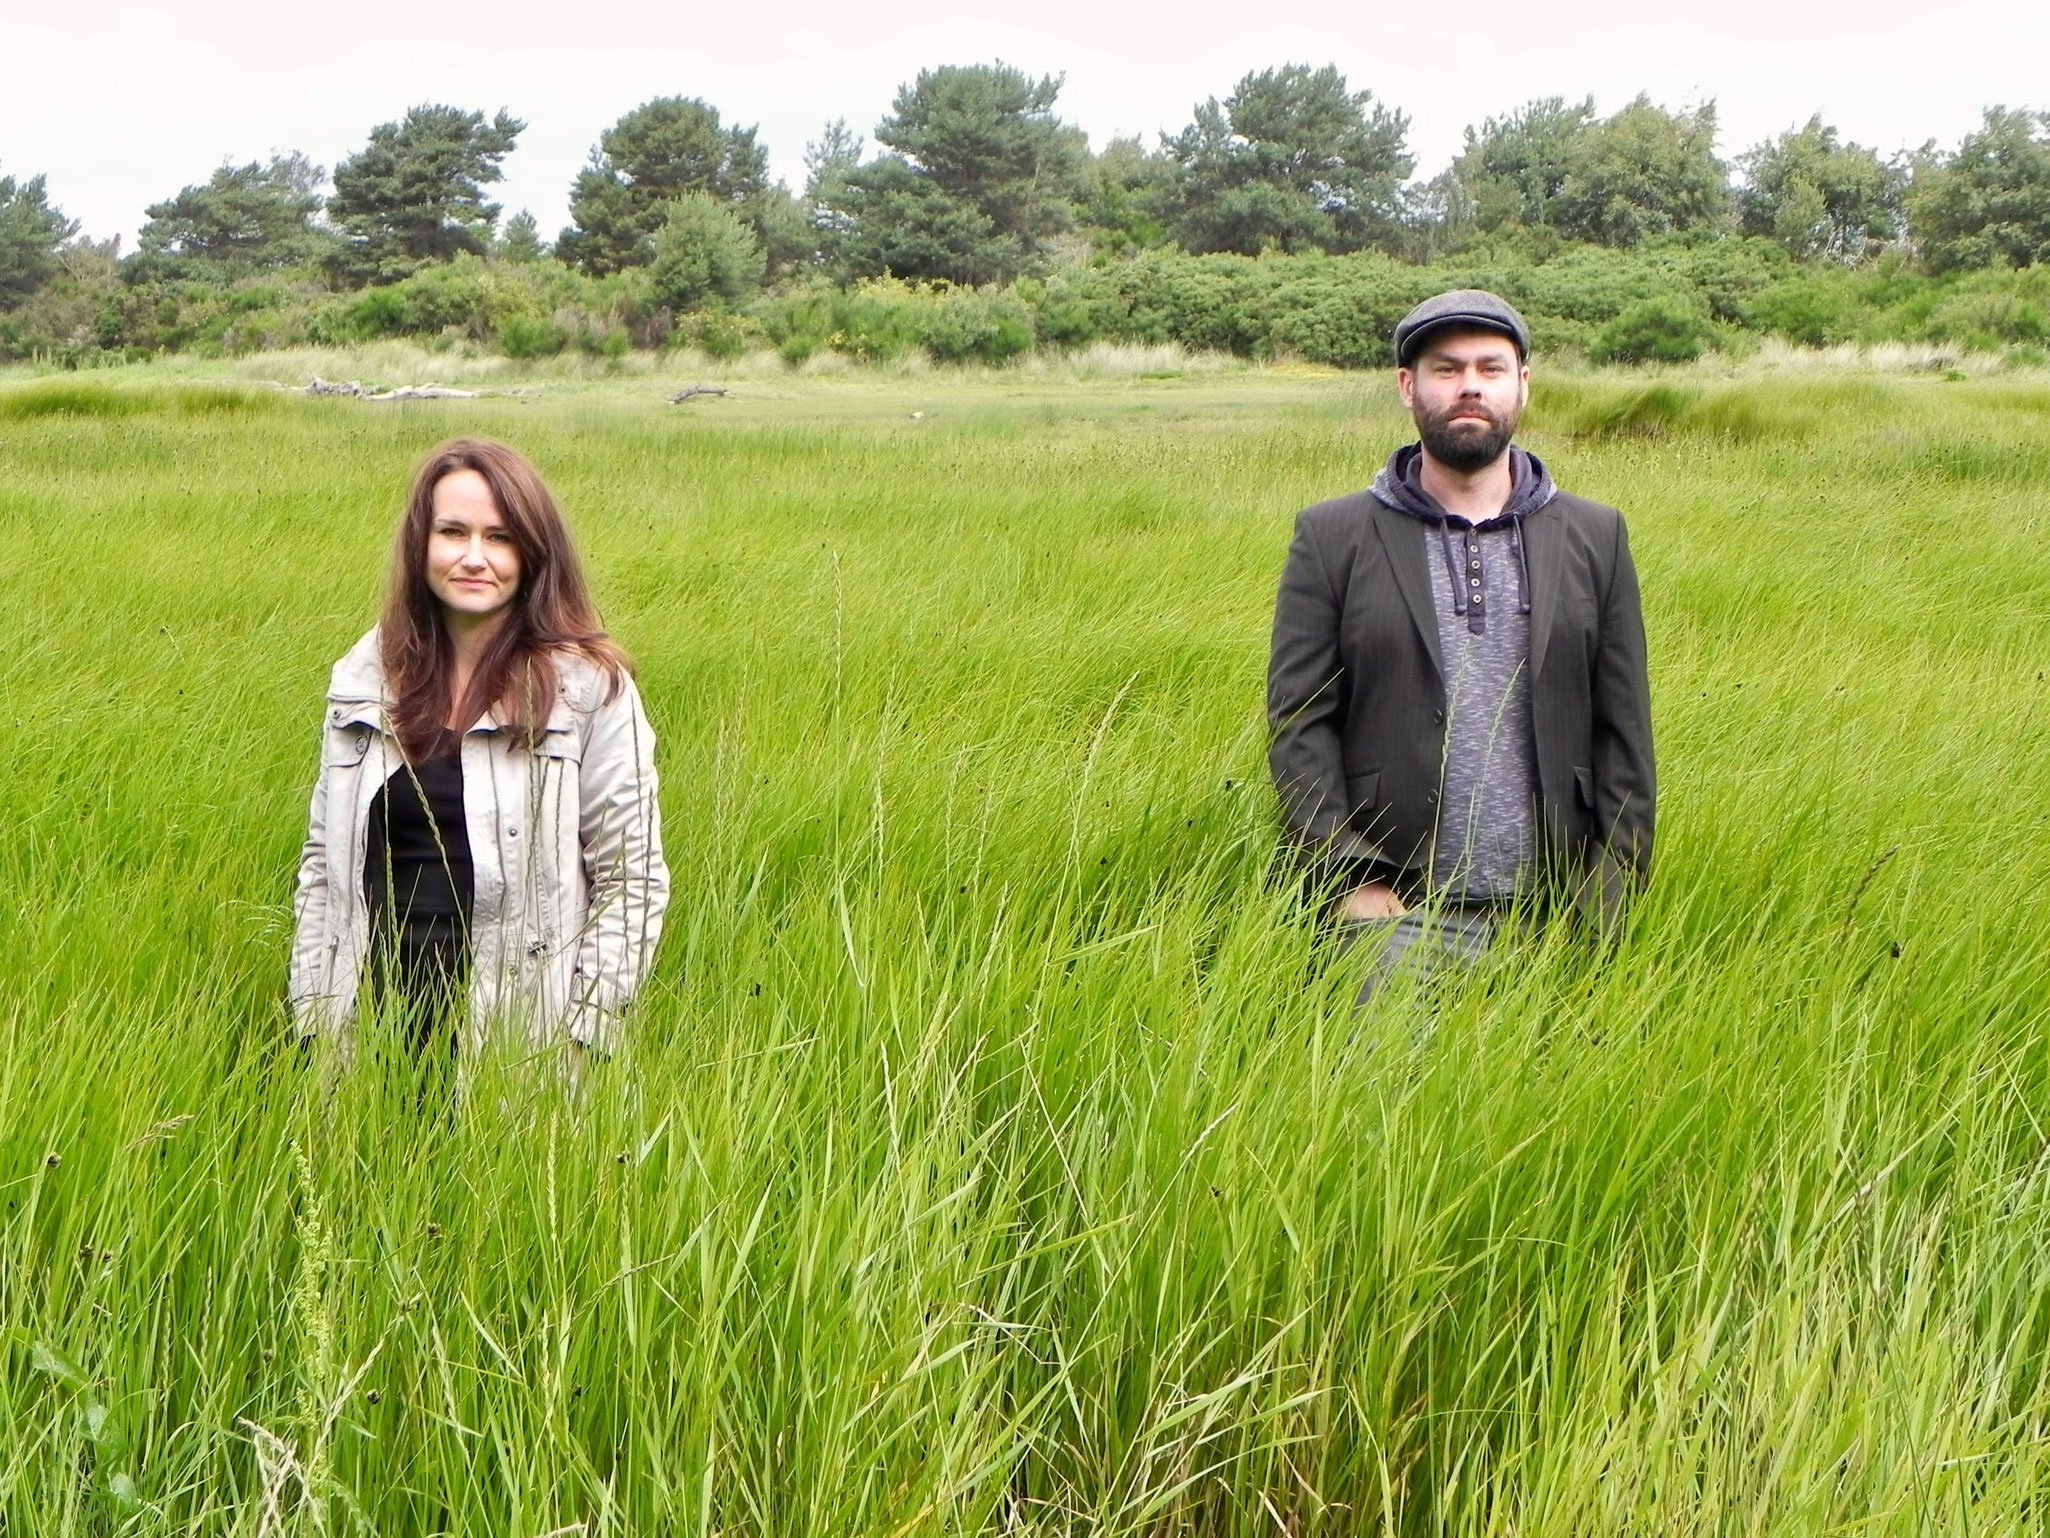 VIDEO PREMIERE: Galileo's Fan - 'We Are The Lucky Ones' - Watch Now